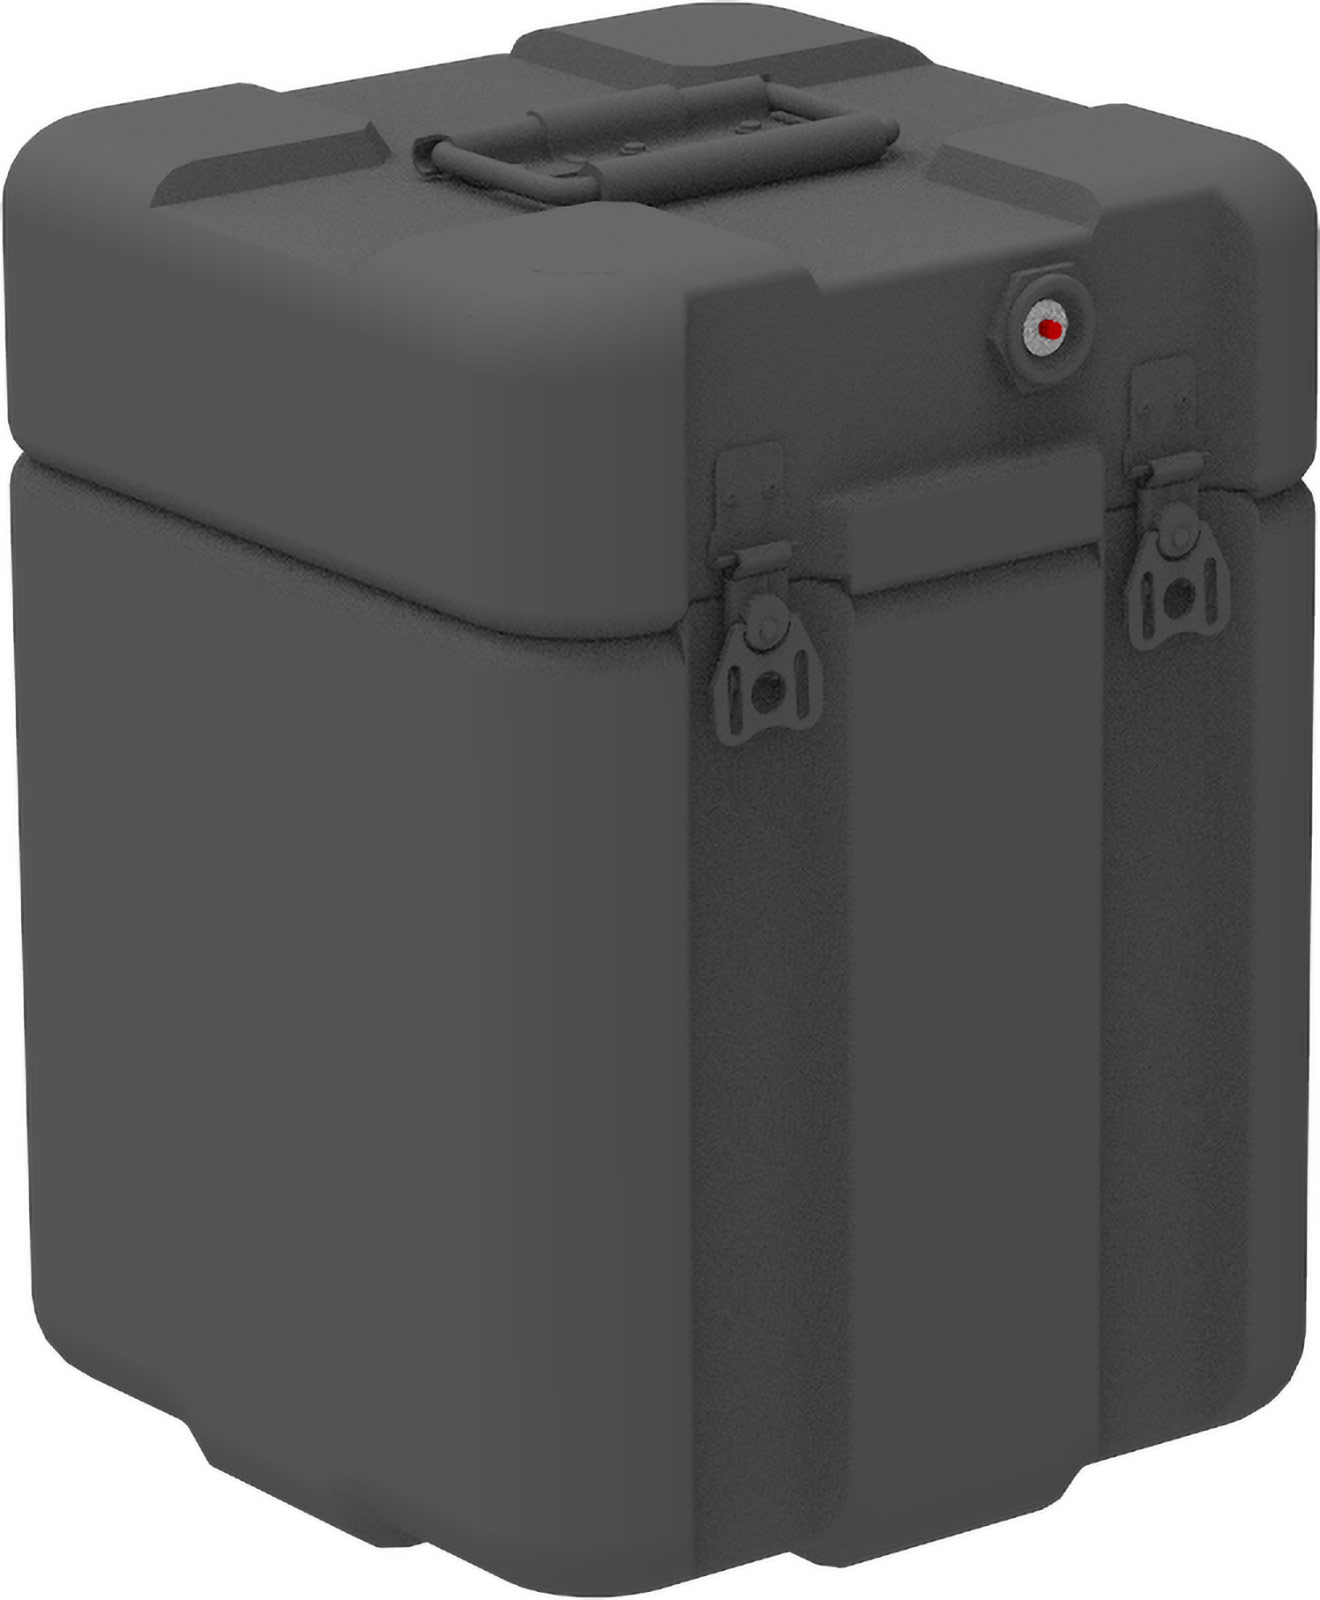 peli eu300030-3010-blk-032 isp2 shipping case